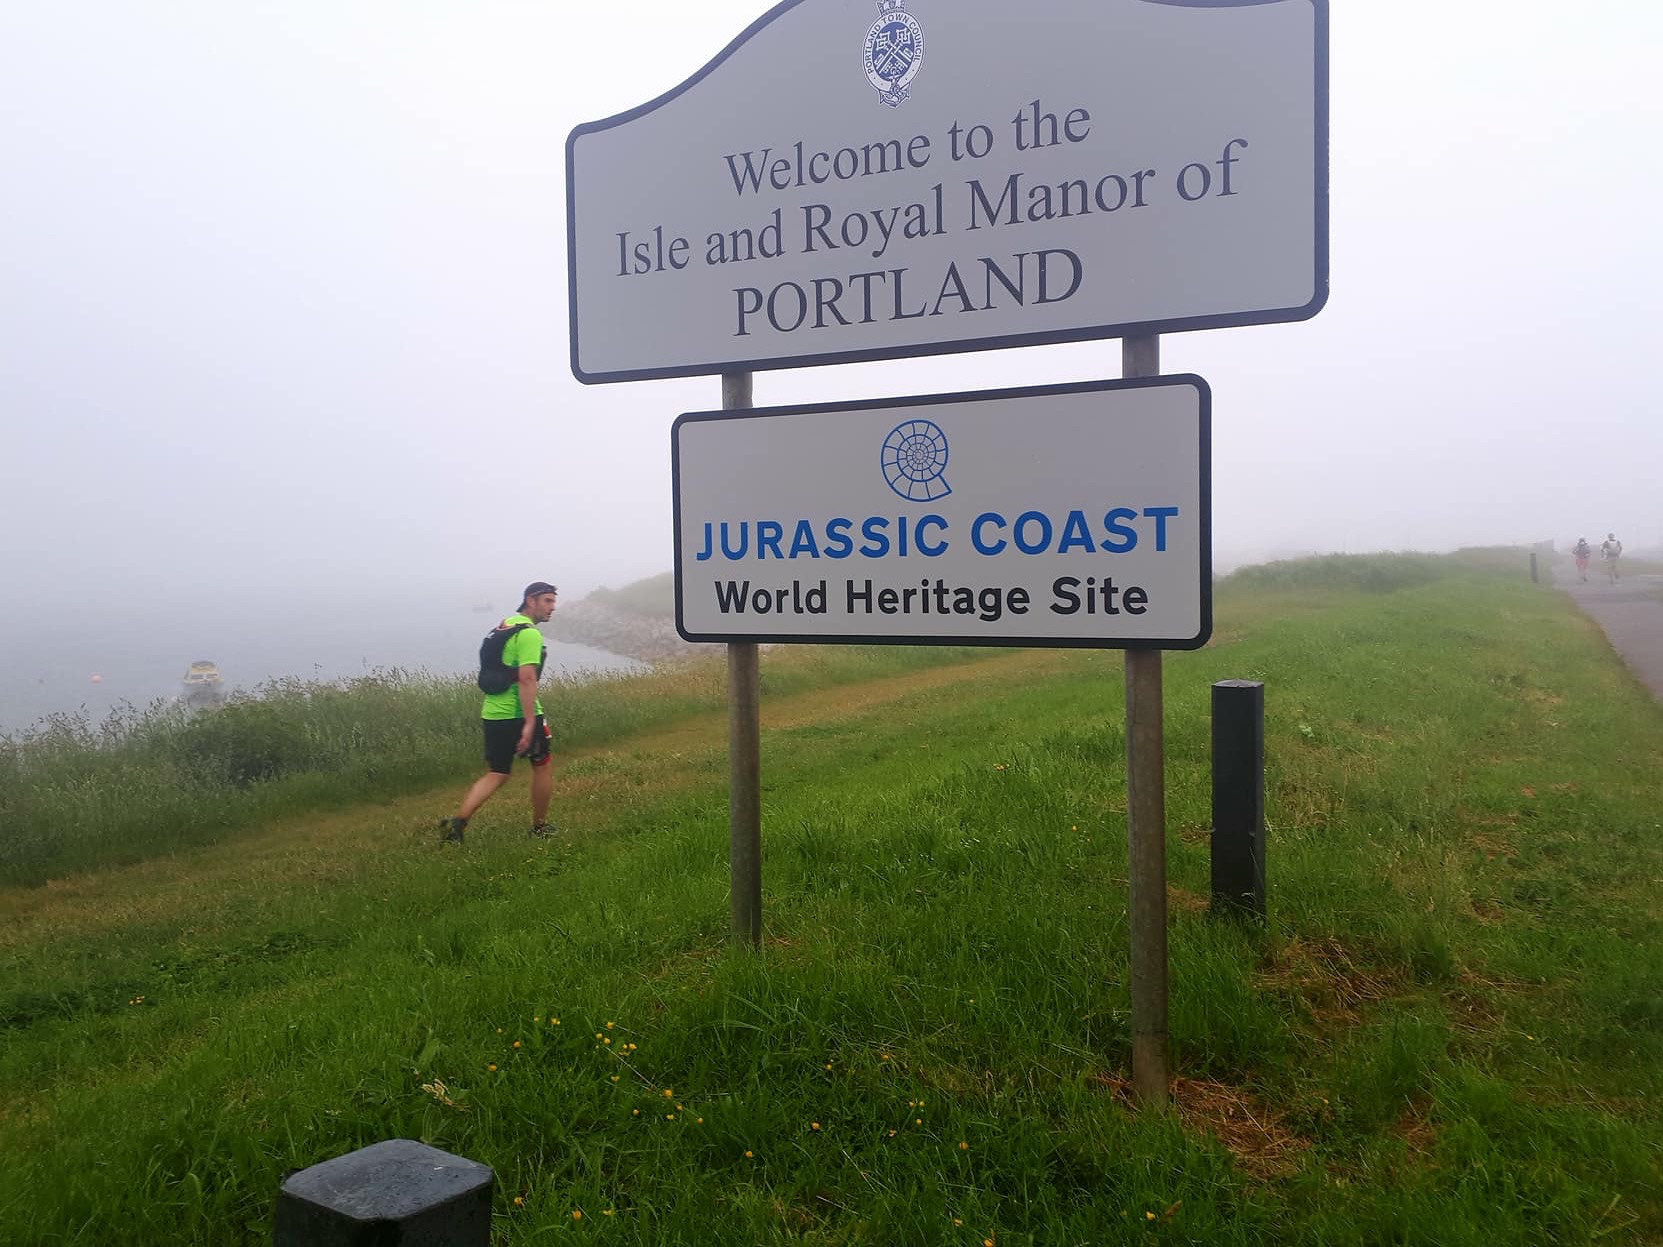 Race Report: Jurassic Coast 100 Miler